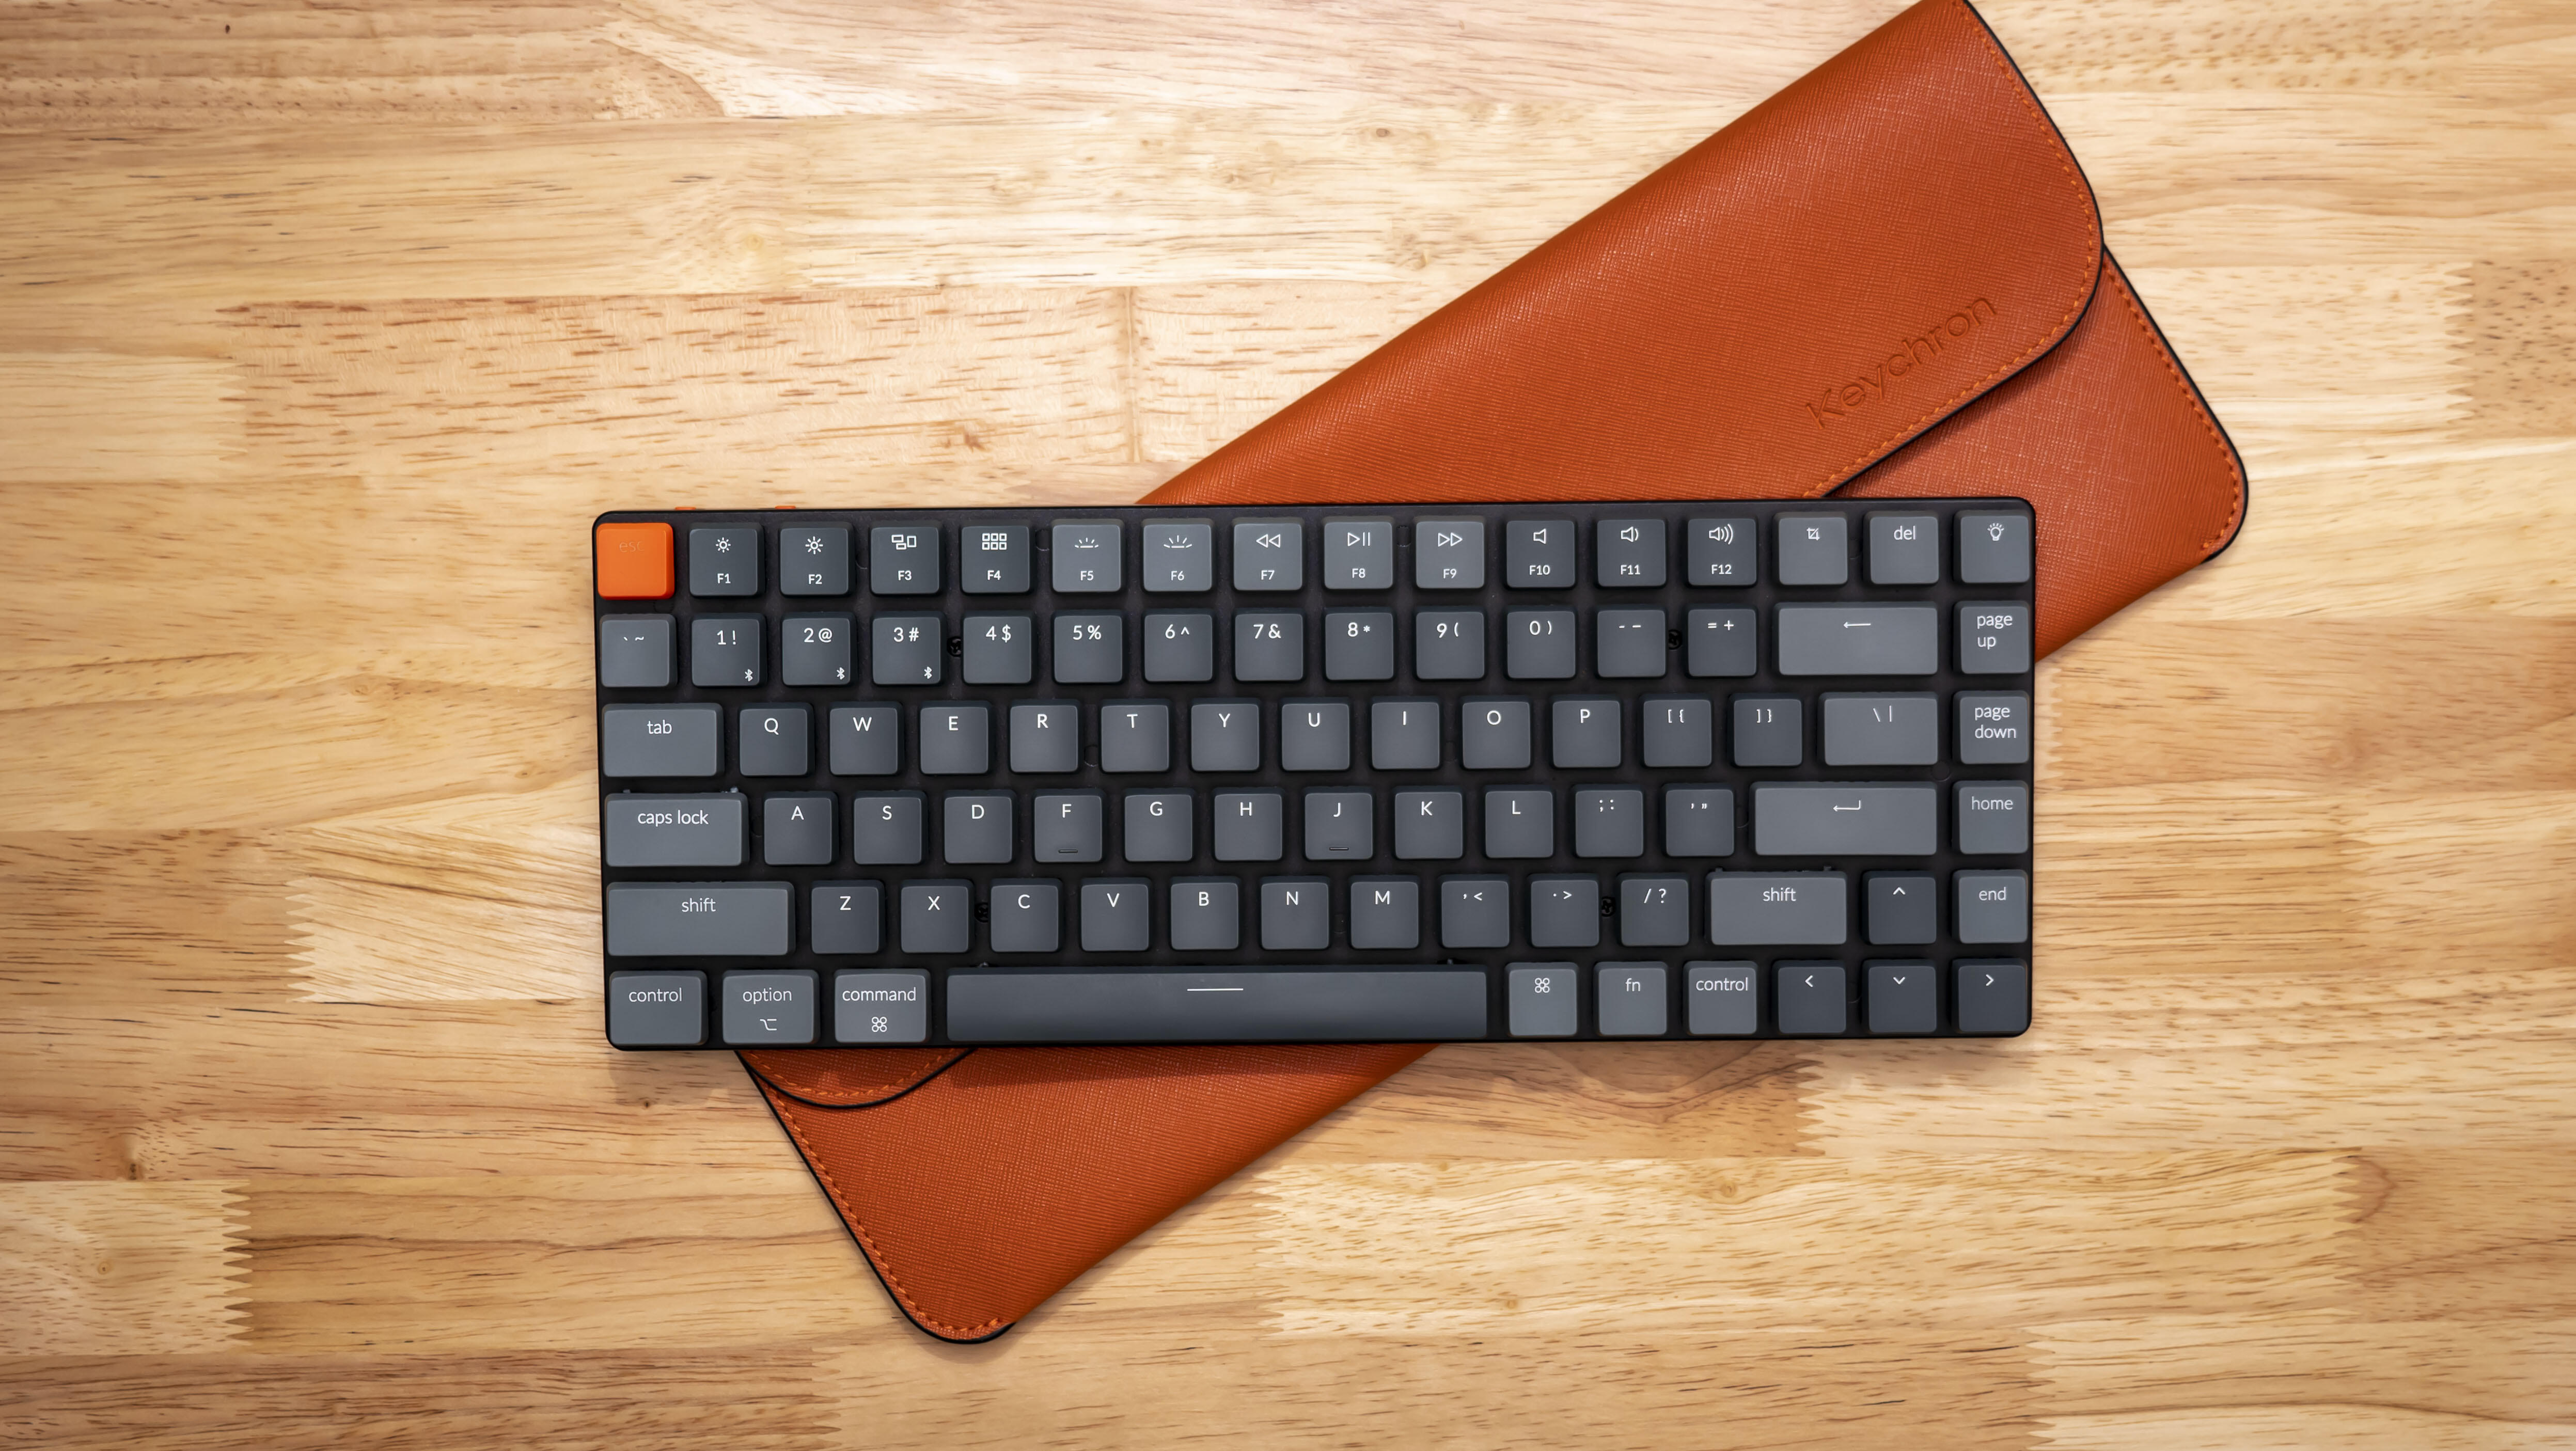 Best keyboard for 2021: Wireless, mechanical, Mac, Windows, travel options and more